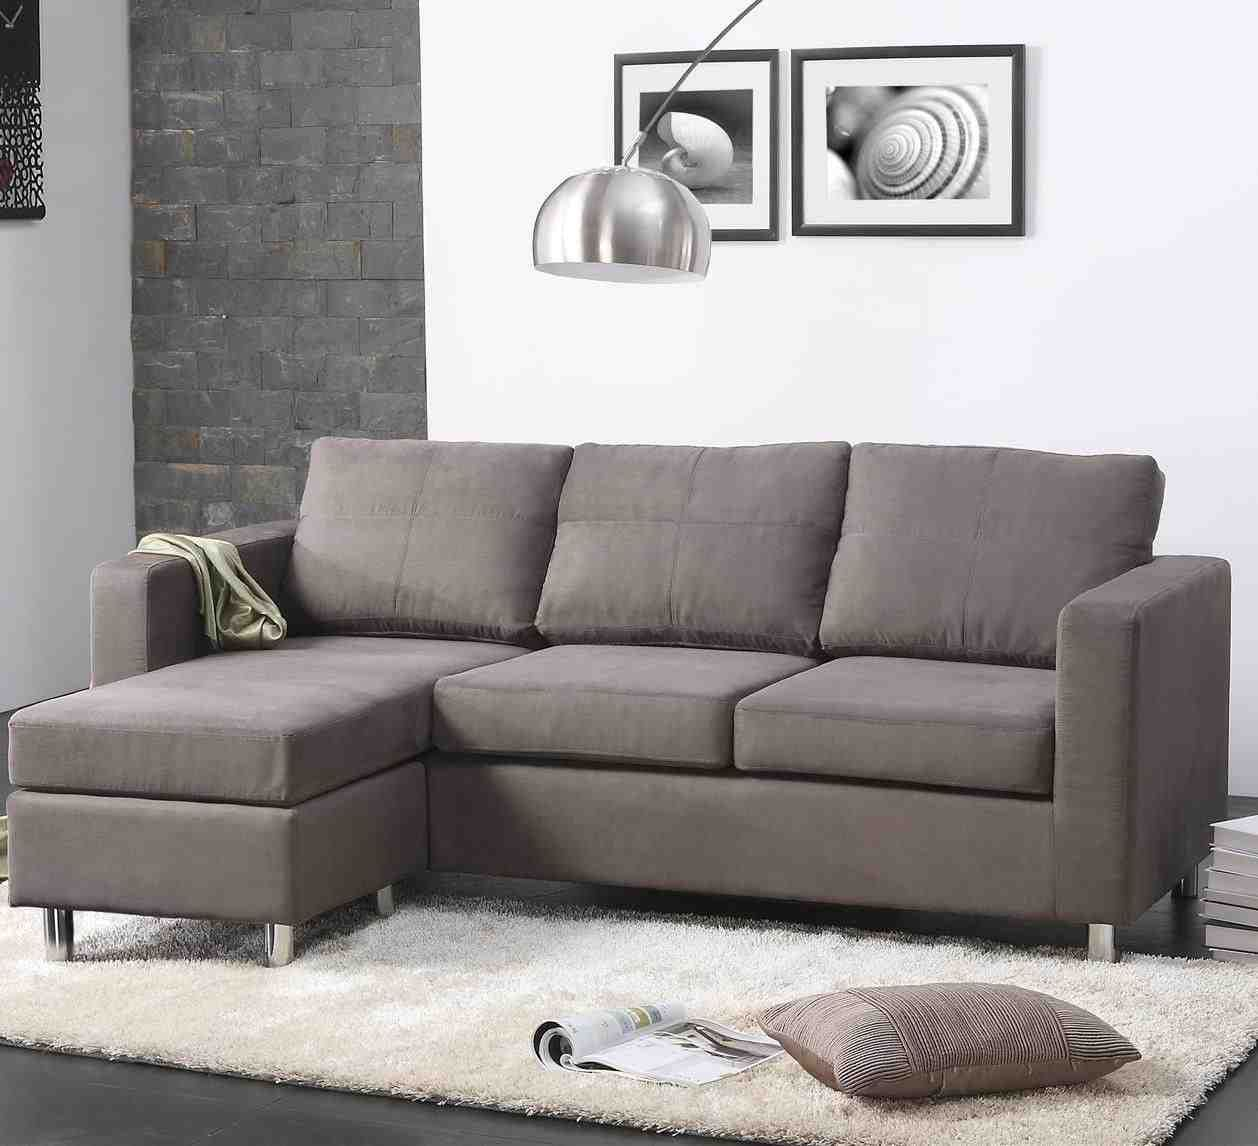 Small L Shaped Sectional Sofa | Interior design | L shaped sofa bed ...